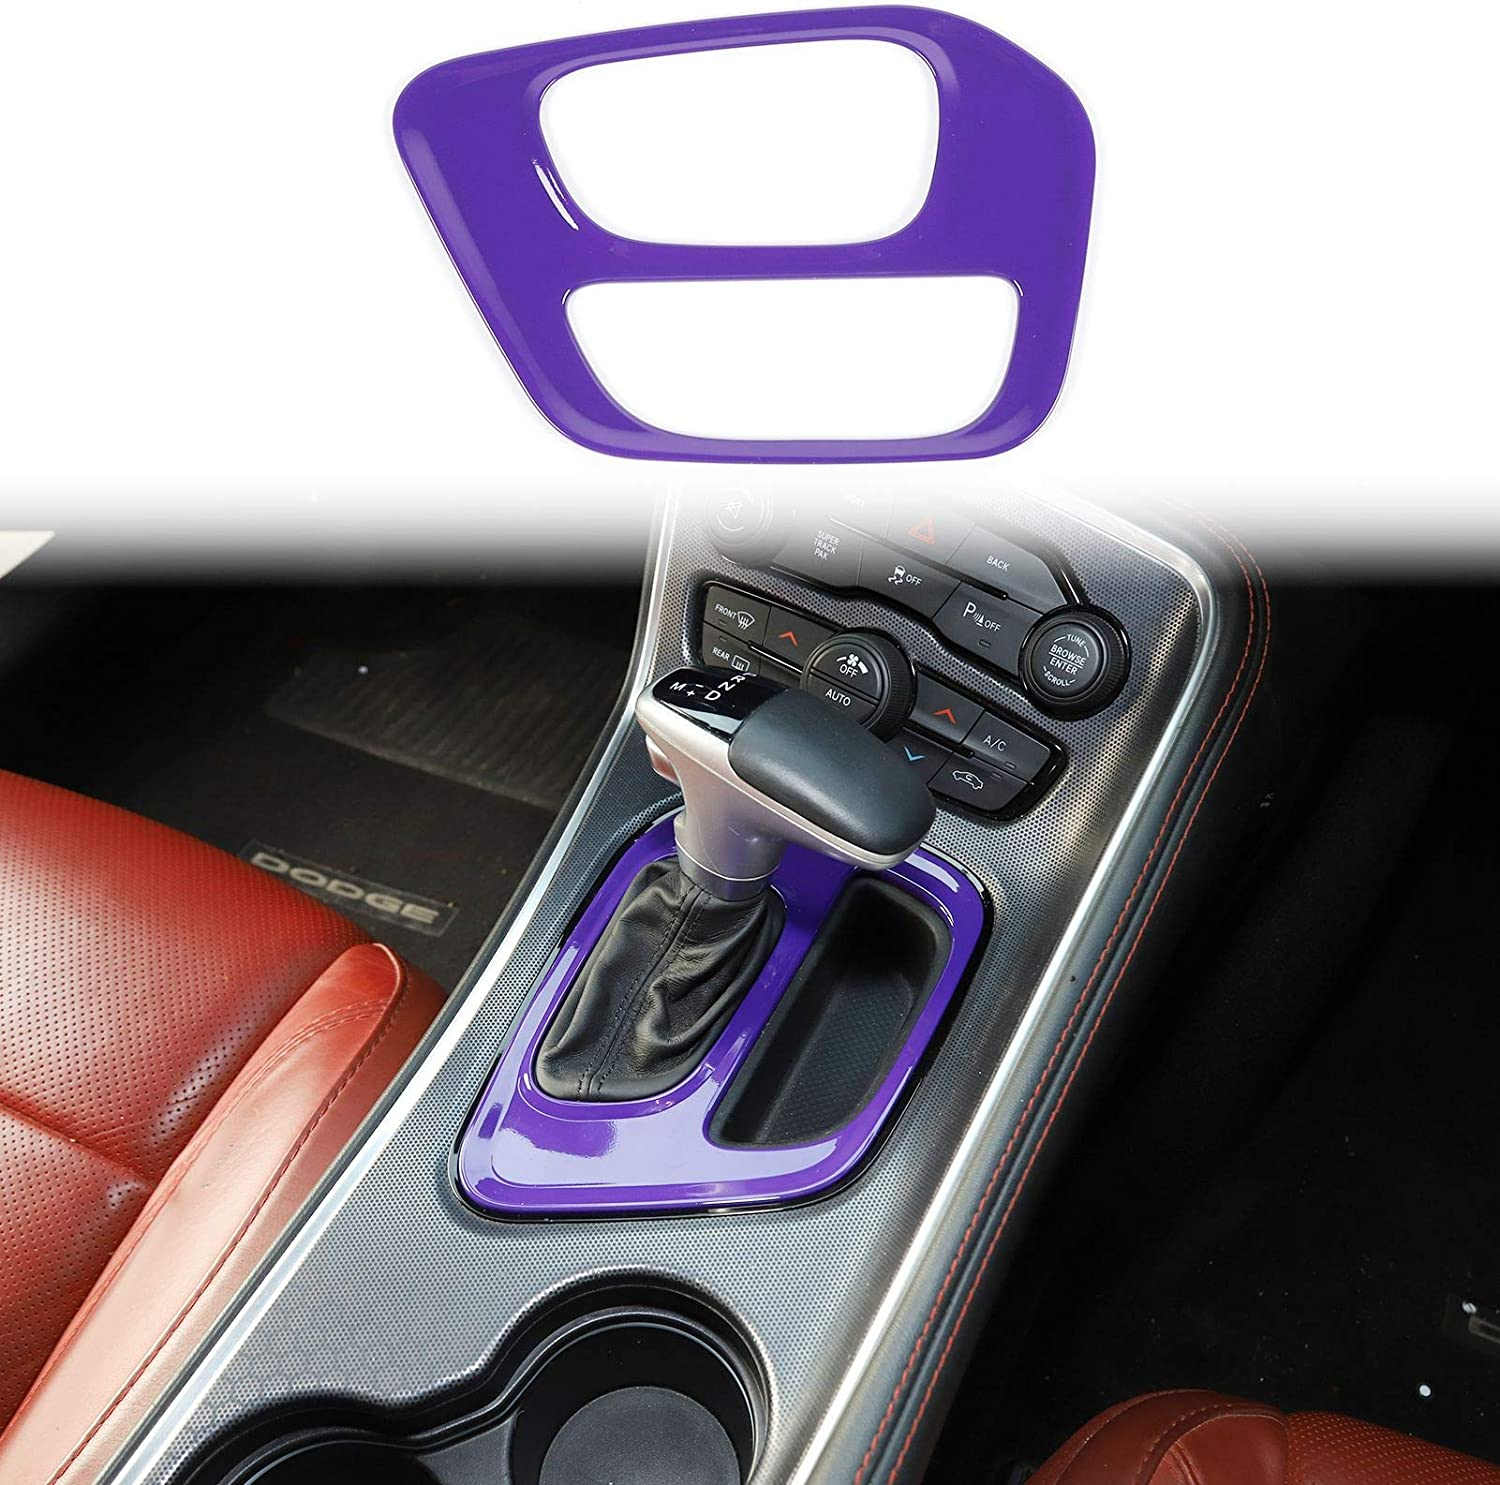 Voodonala for Challenger Gear Shift Covers Trim for 2015-2020 Dodge Challenger ABS Pink 1pc